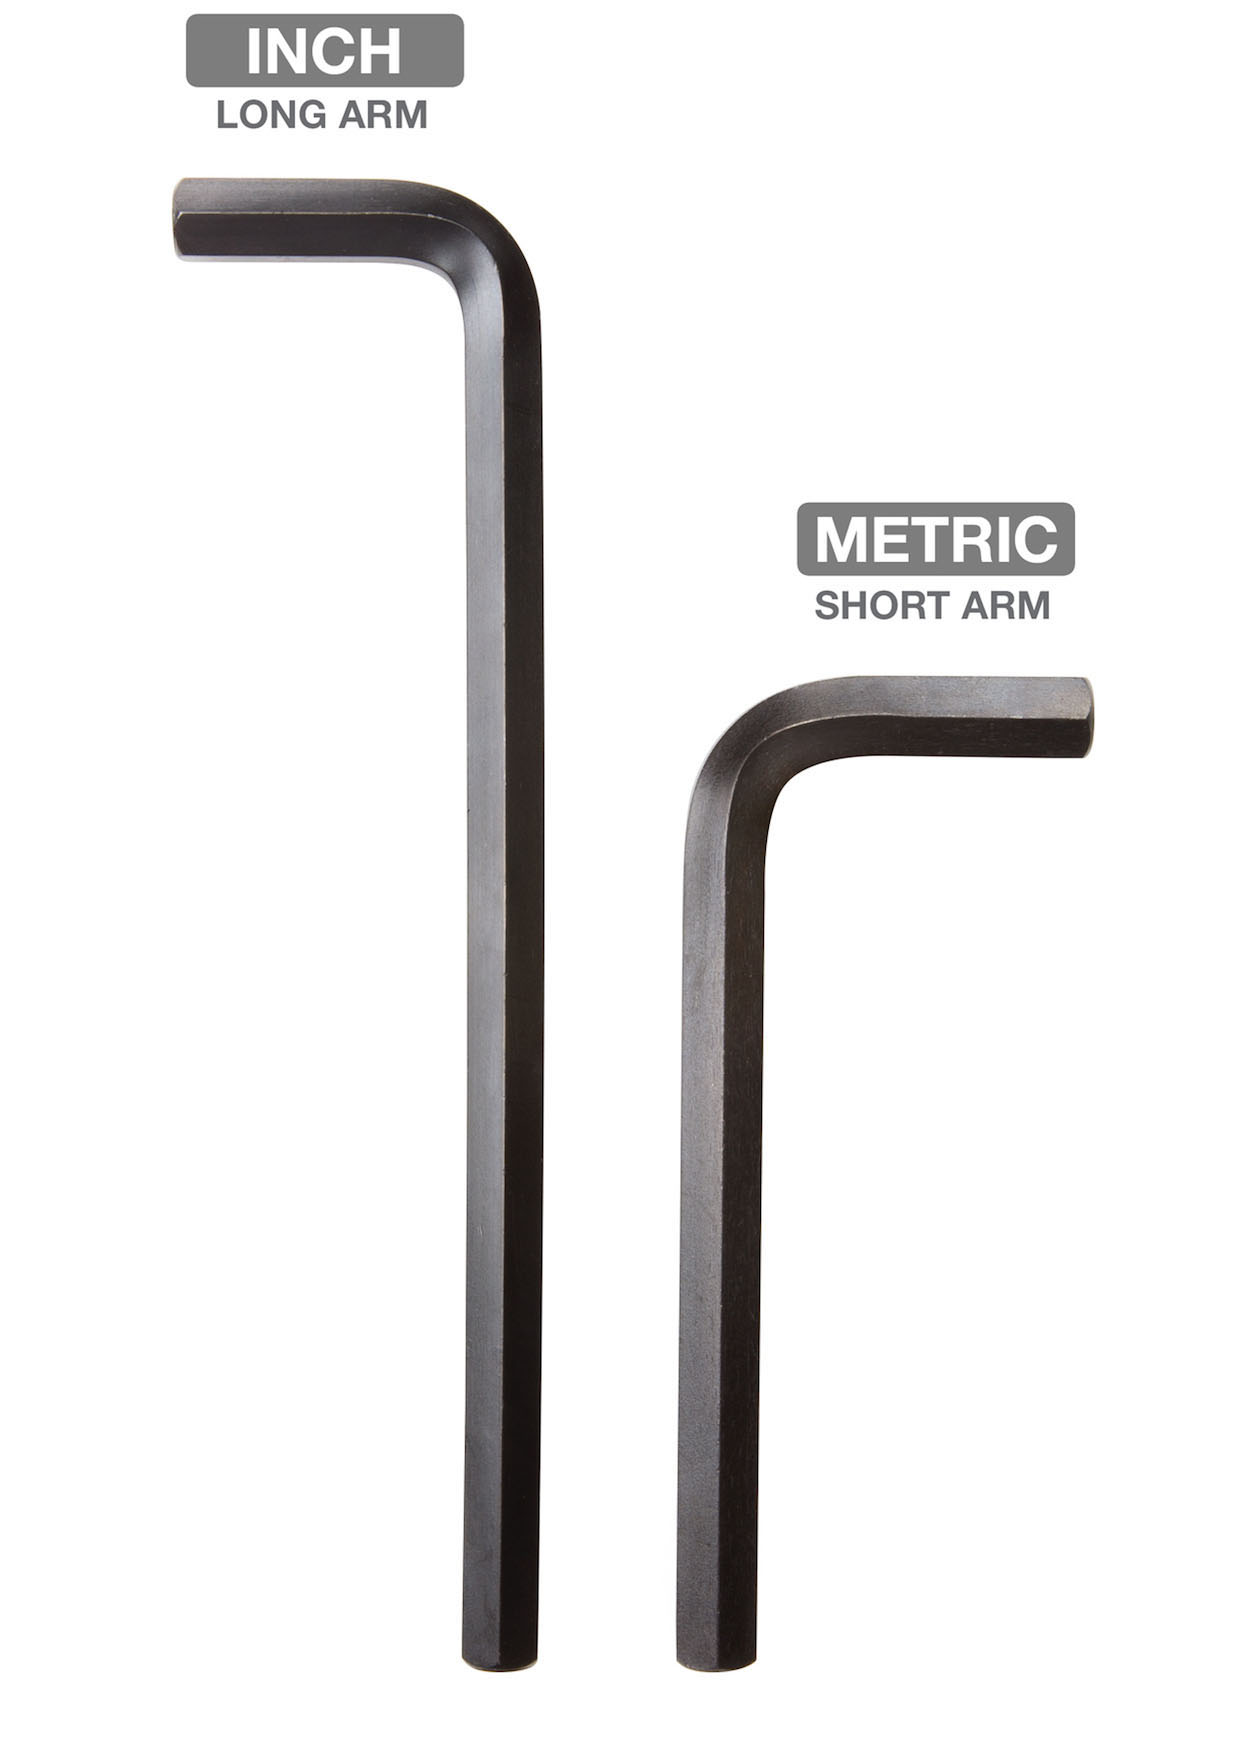 Size comparison of inch long arm and metric short arm hex key wrench